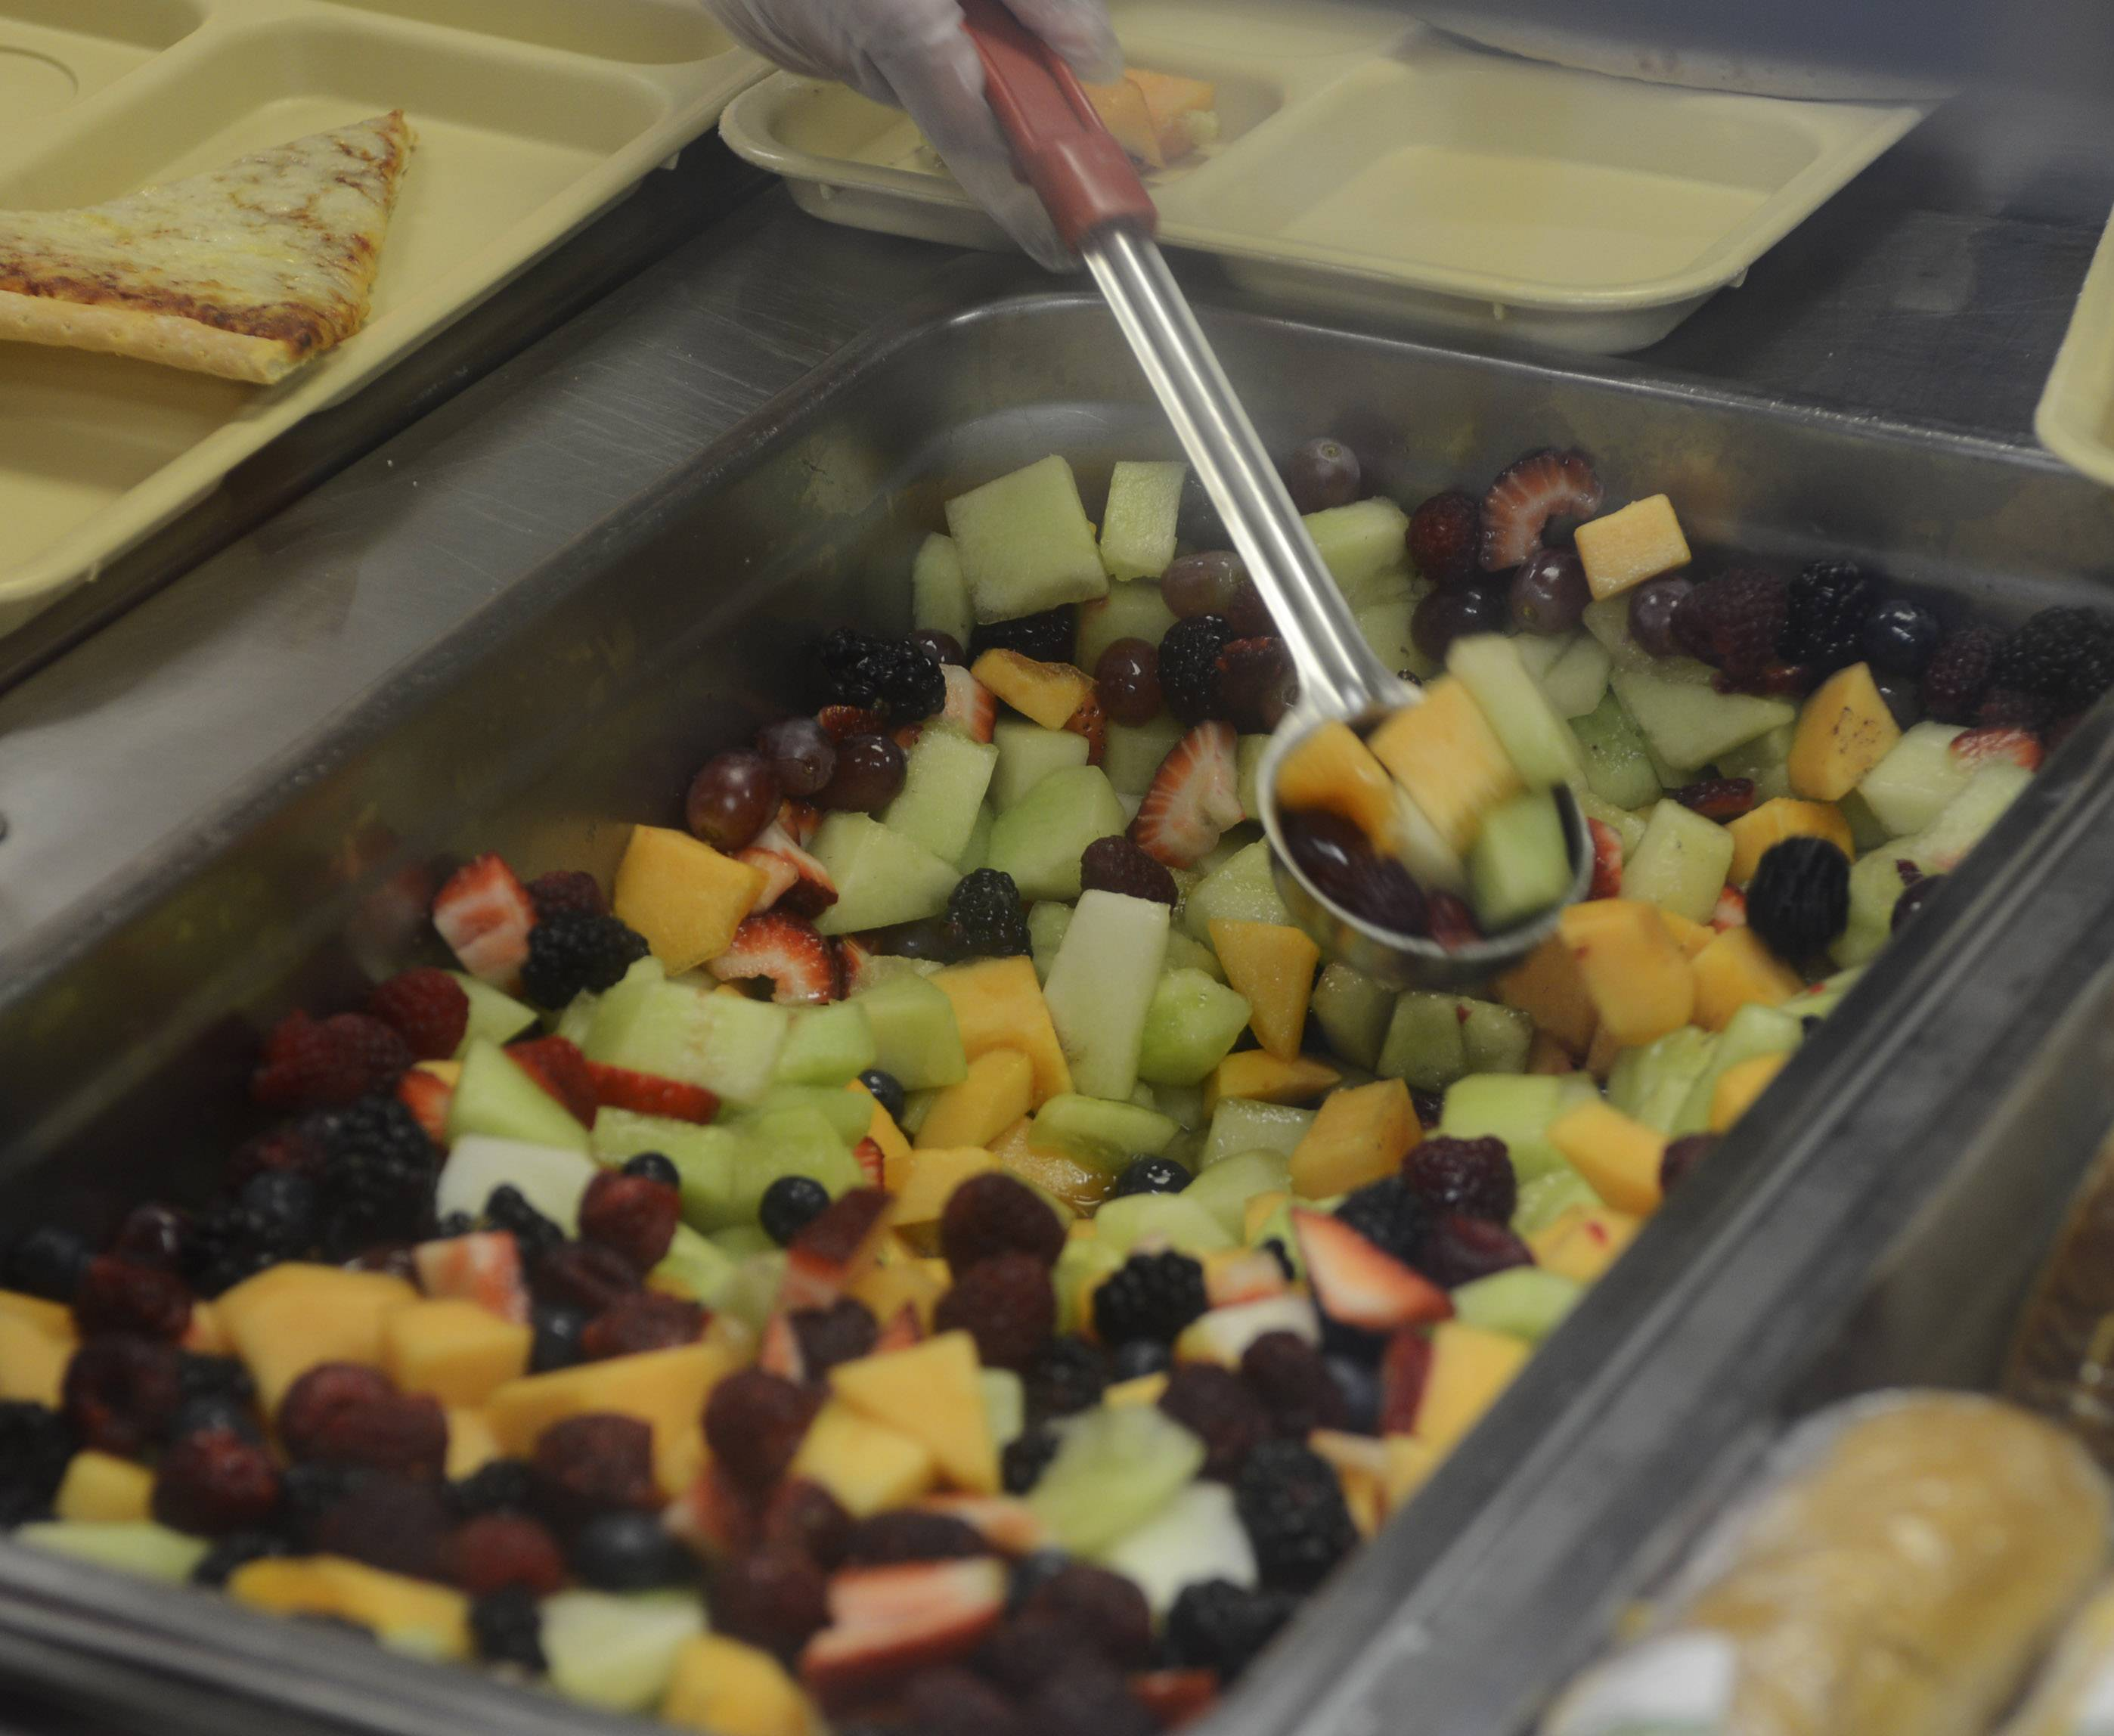 A fruit medley is served in the lunchroom in May at Fremont Intermediate School near Mundelein. Fremont School District 79 allows students to have sweet treats as long as healthy food is also on the table.